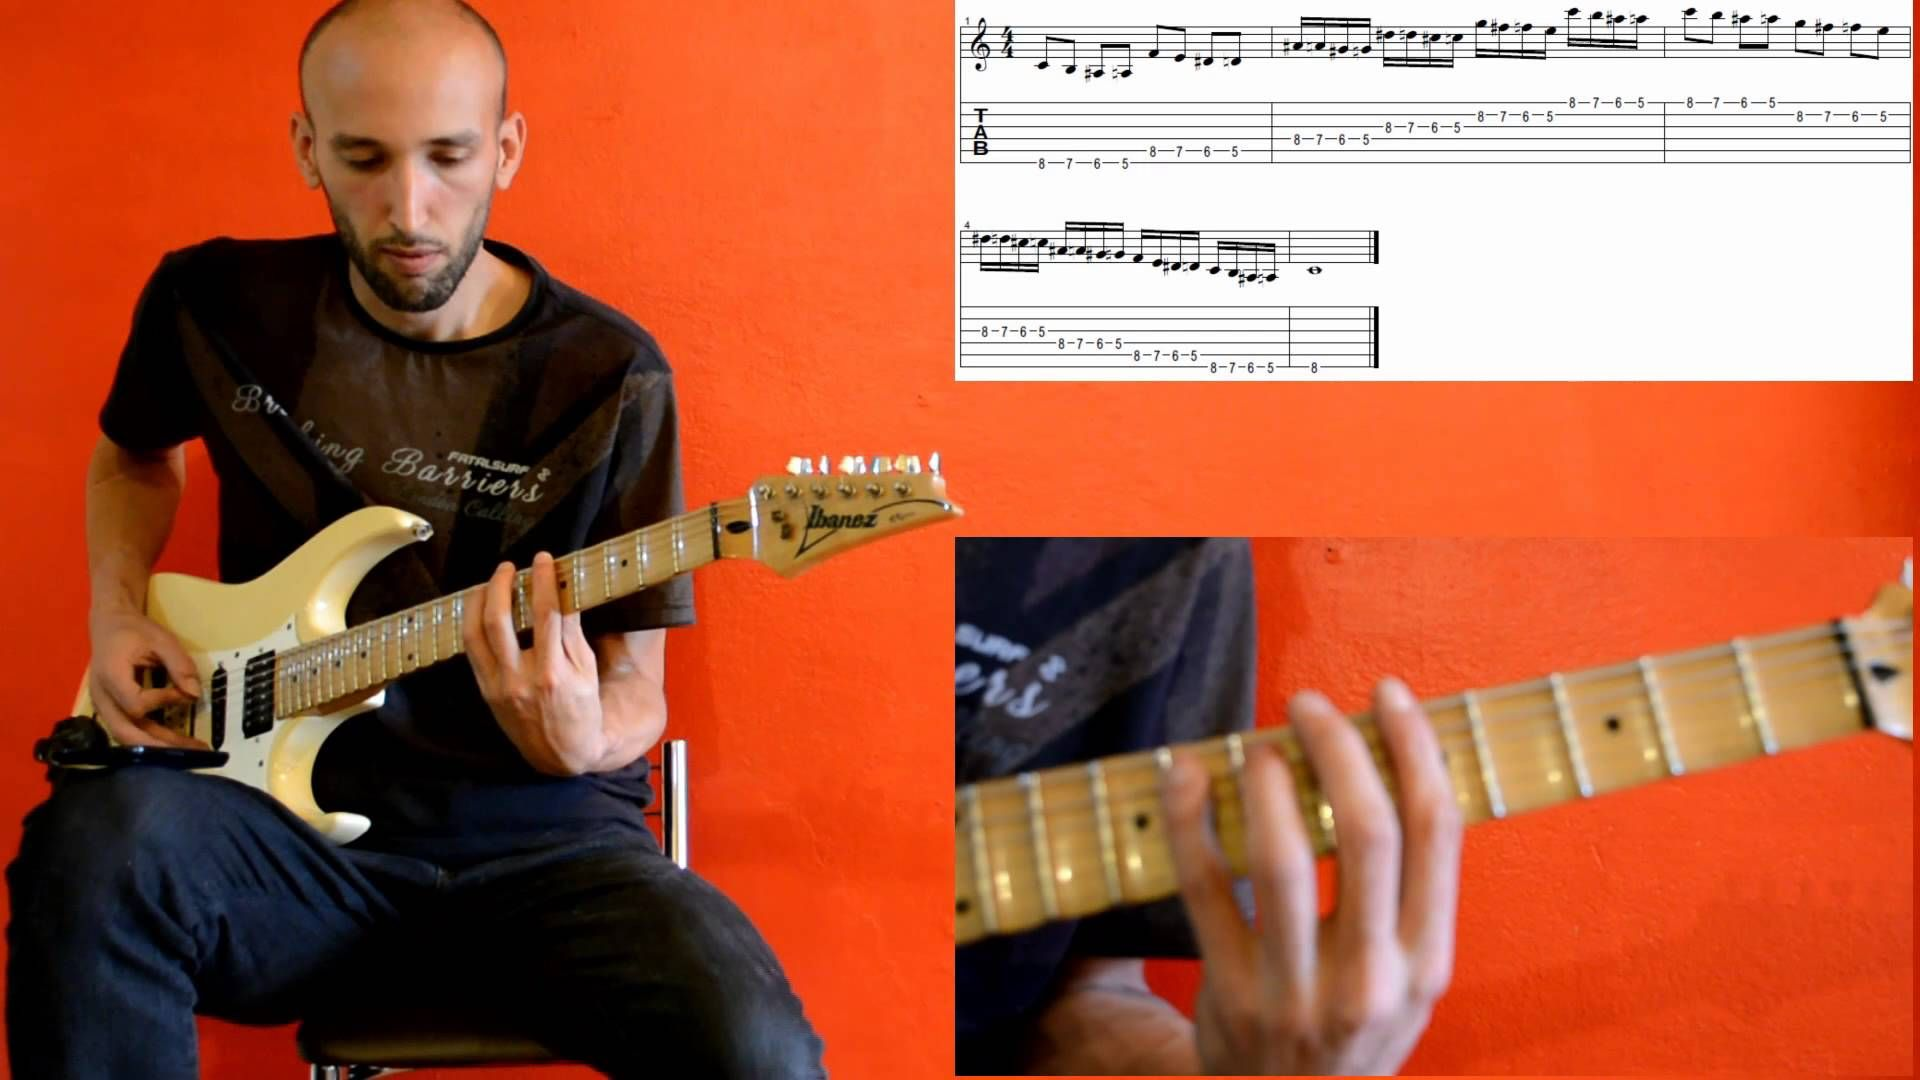 Symmetrical exercises for guitar n.3 - Daniel Nodari